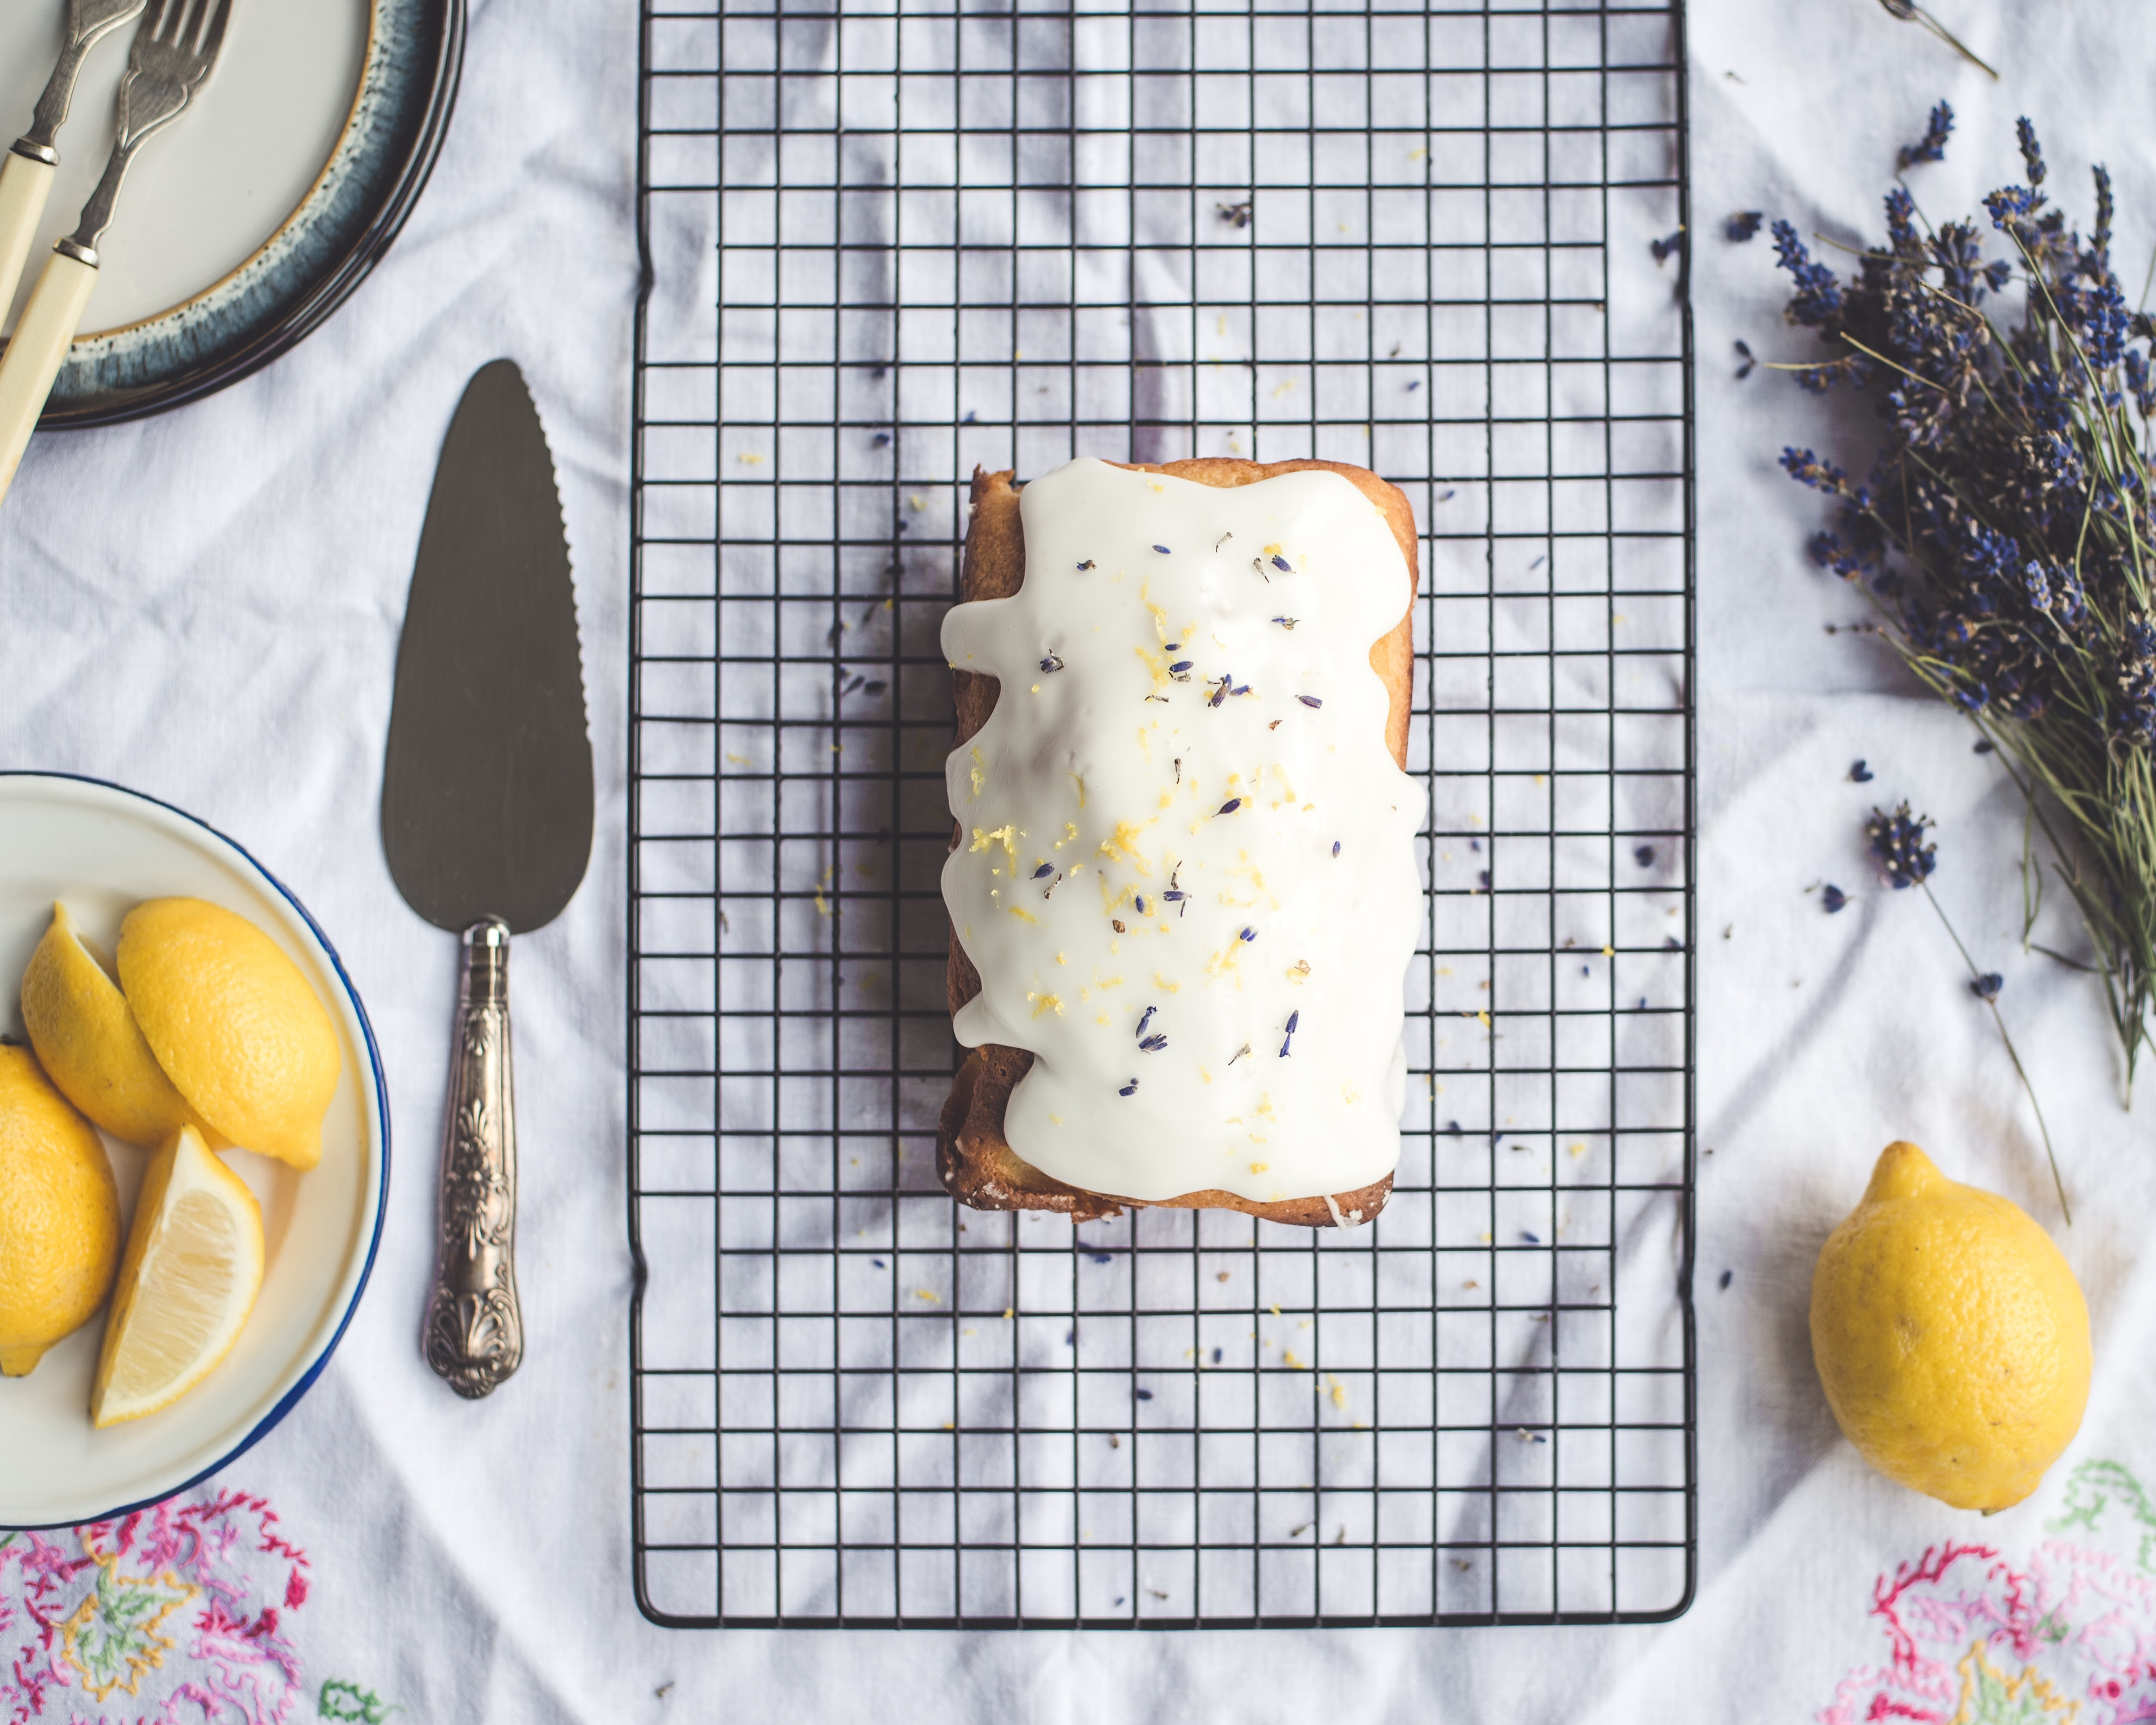 Freshly baked lemon cake with icing and lavender flowers